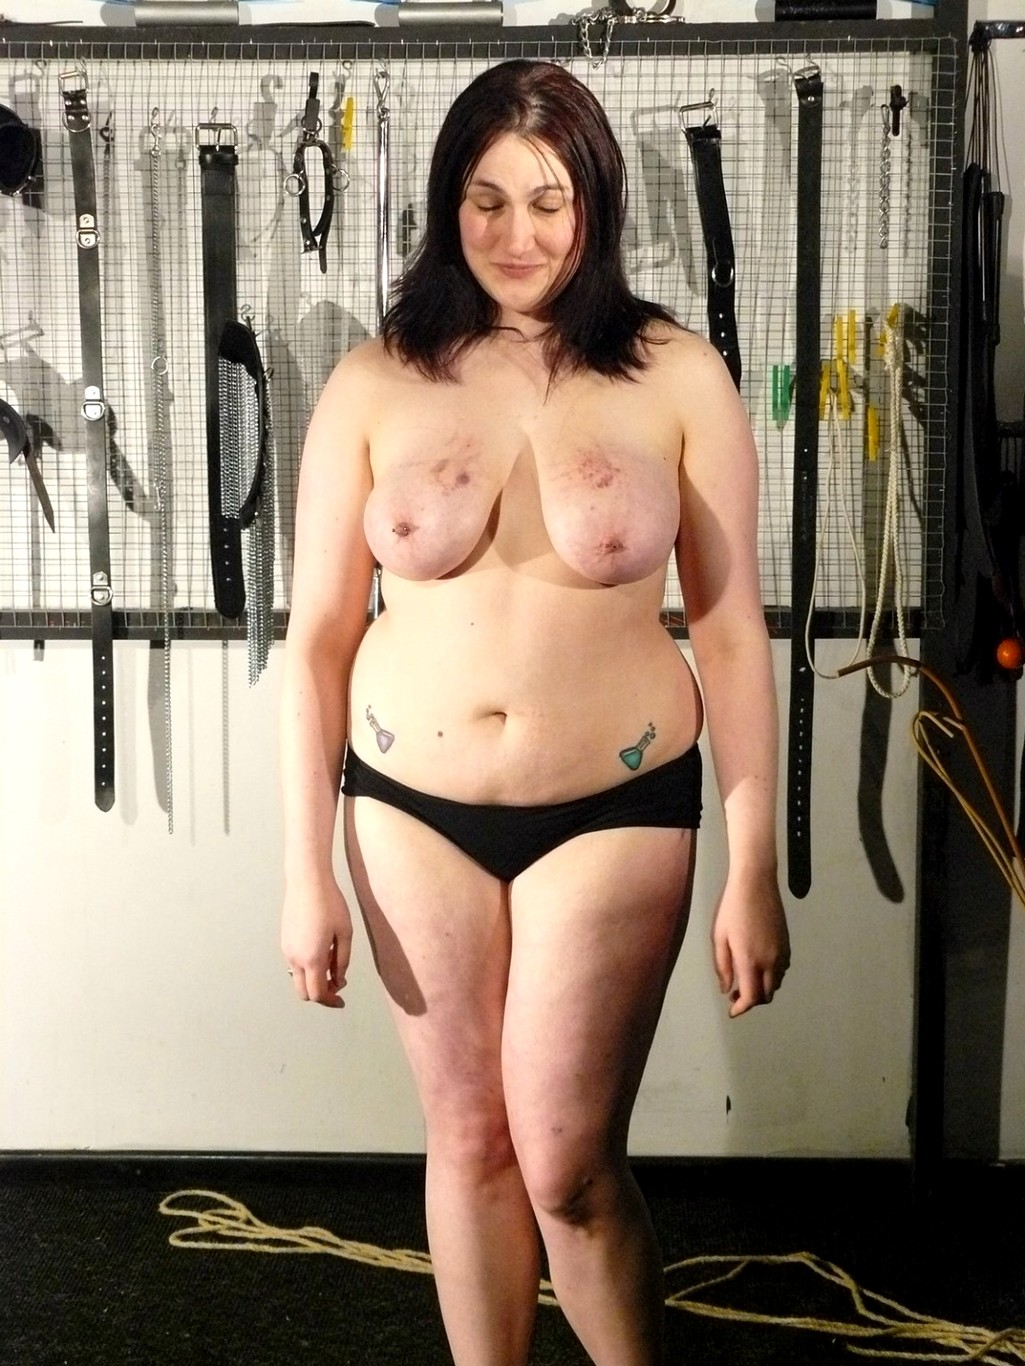 Bbw bdsm model agencies